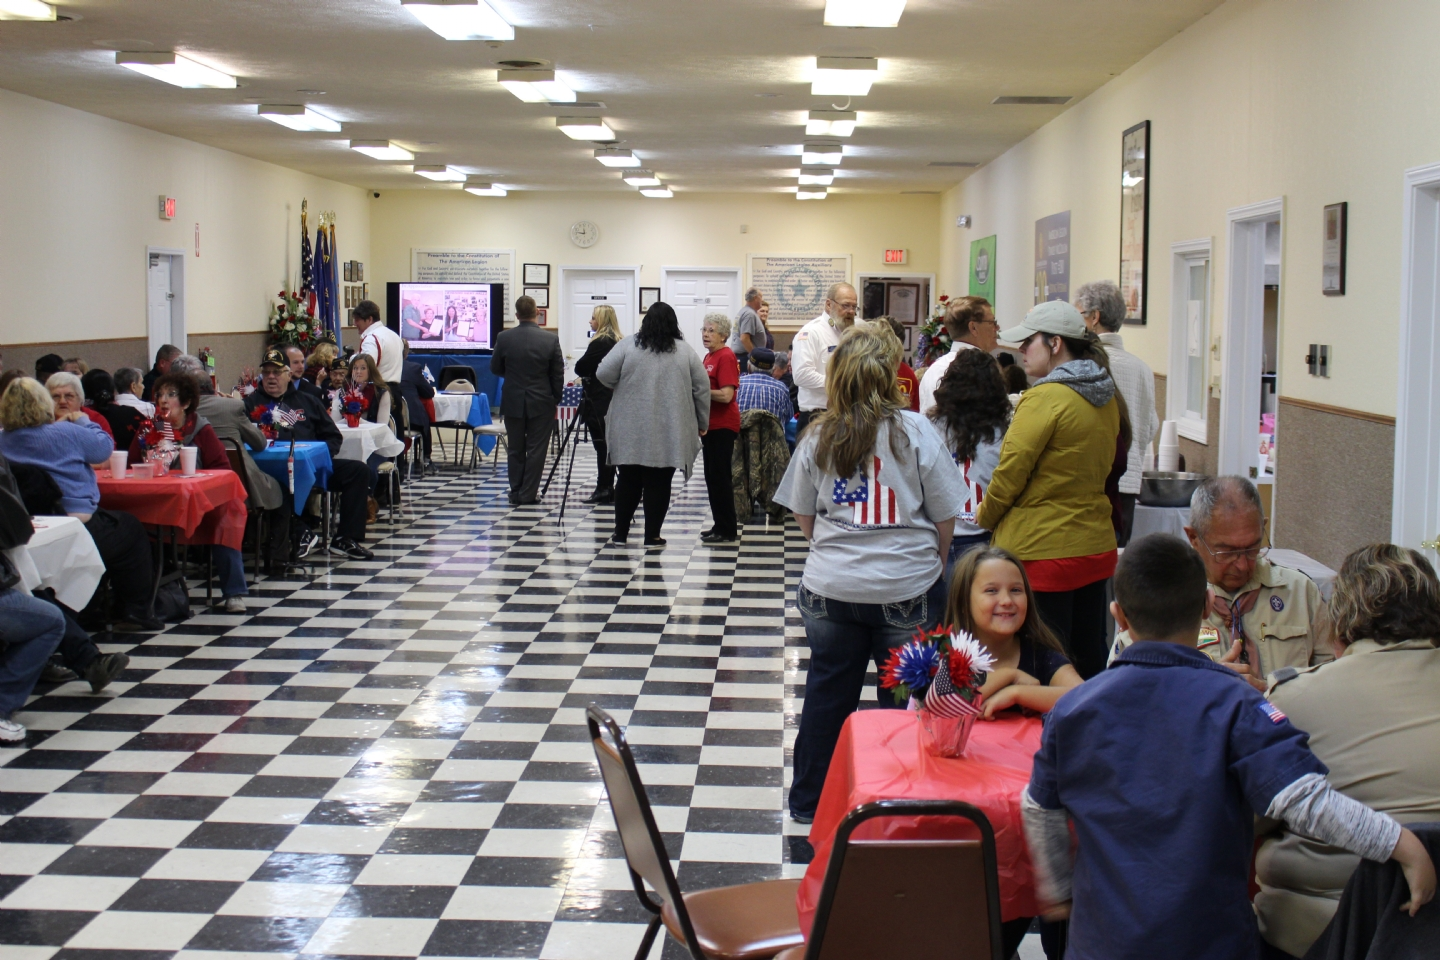 On Veteran's Day, November 11th 2018, the Benton American Legion Post 280 celebrated the American Legion Centennial. The highlight of this historic event was World War 2 Veteran, Carl Campanella, finally receiving the medals awarded him 73 years before.